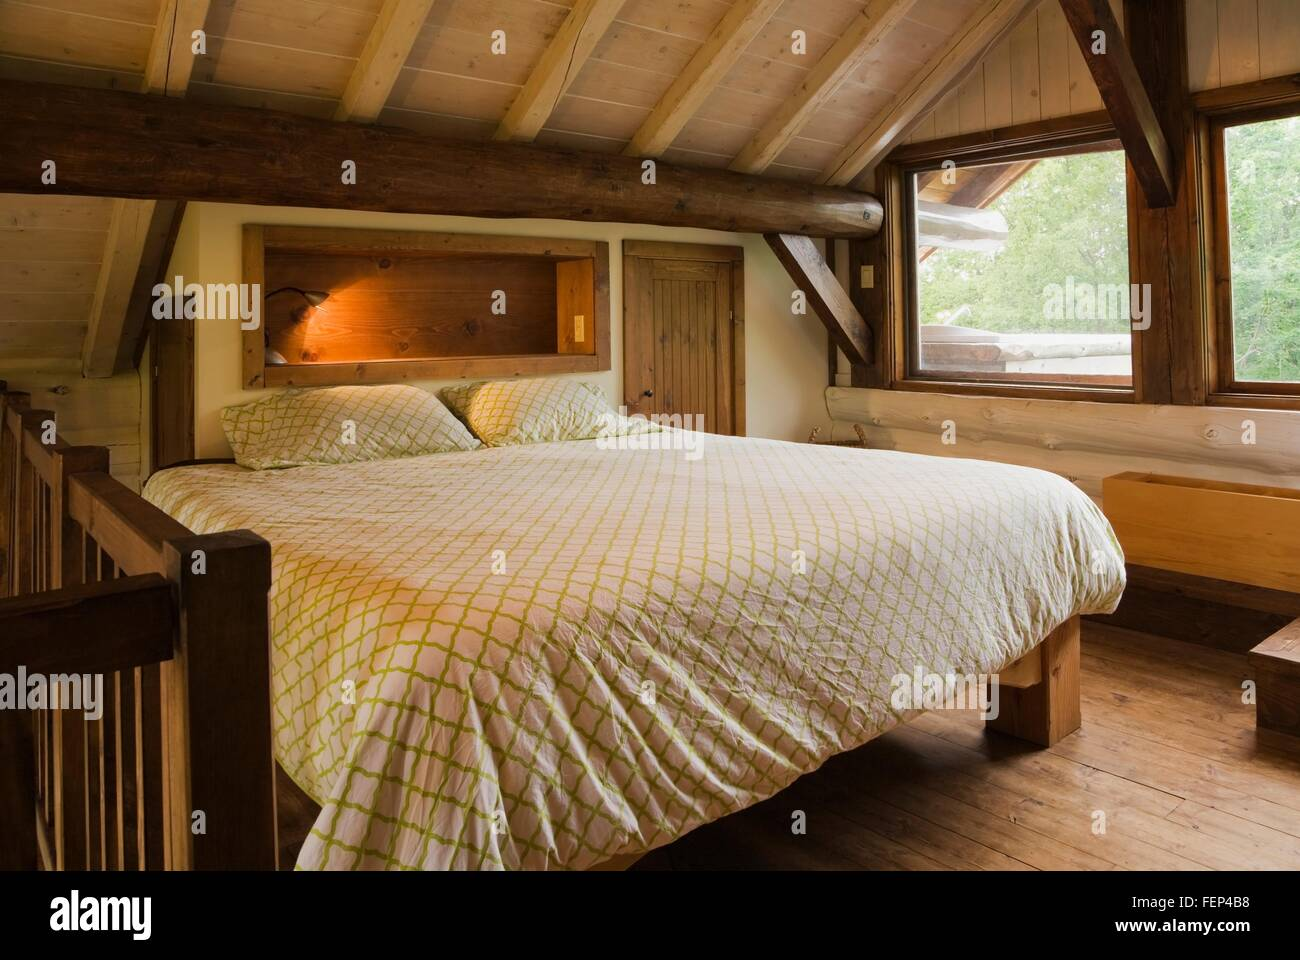 King Size Bed On Wooden Frame In Master Bedroom On The